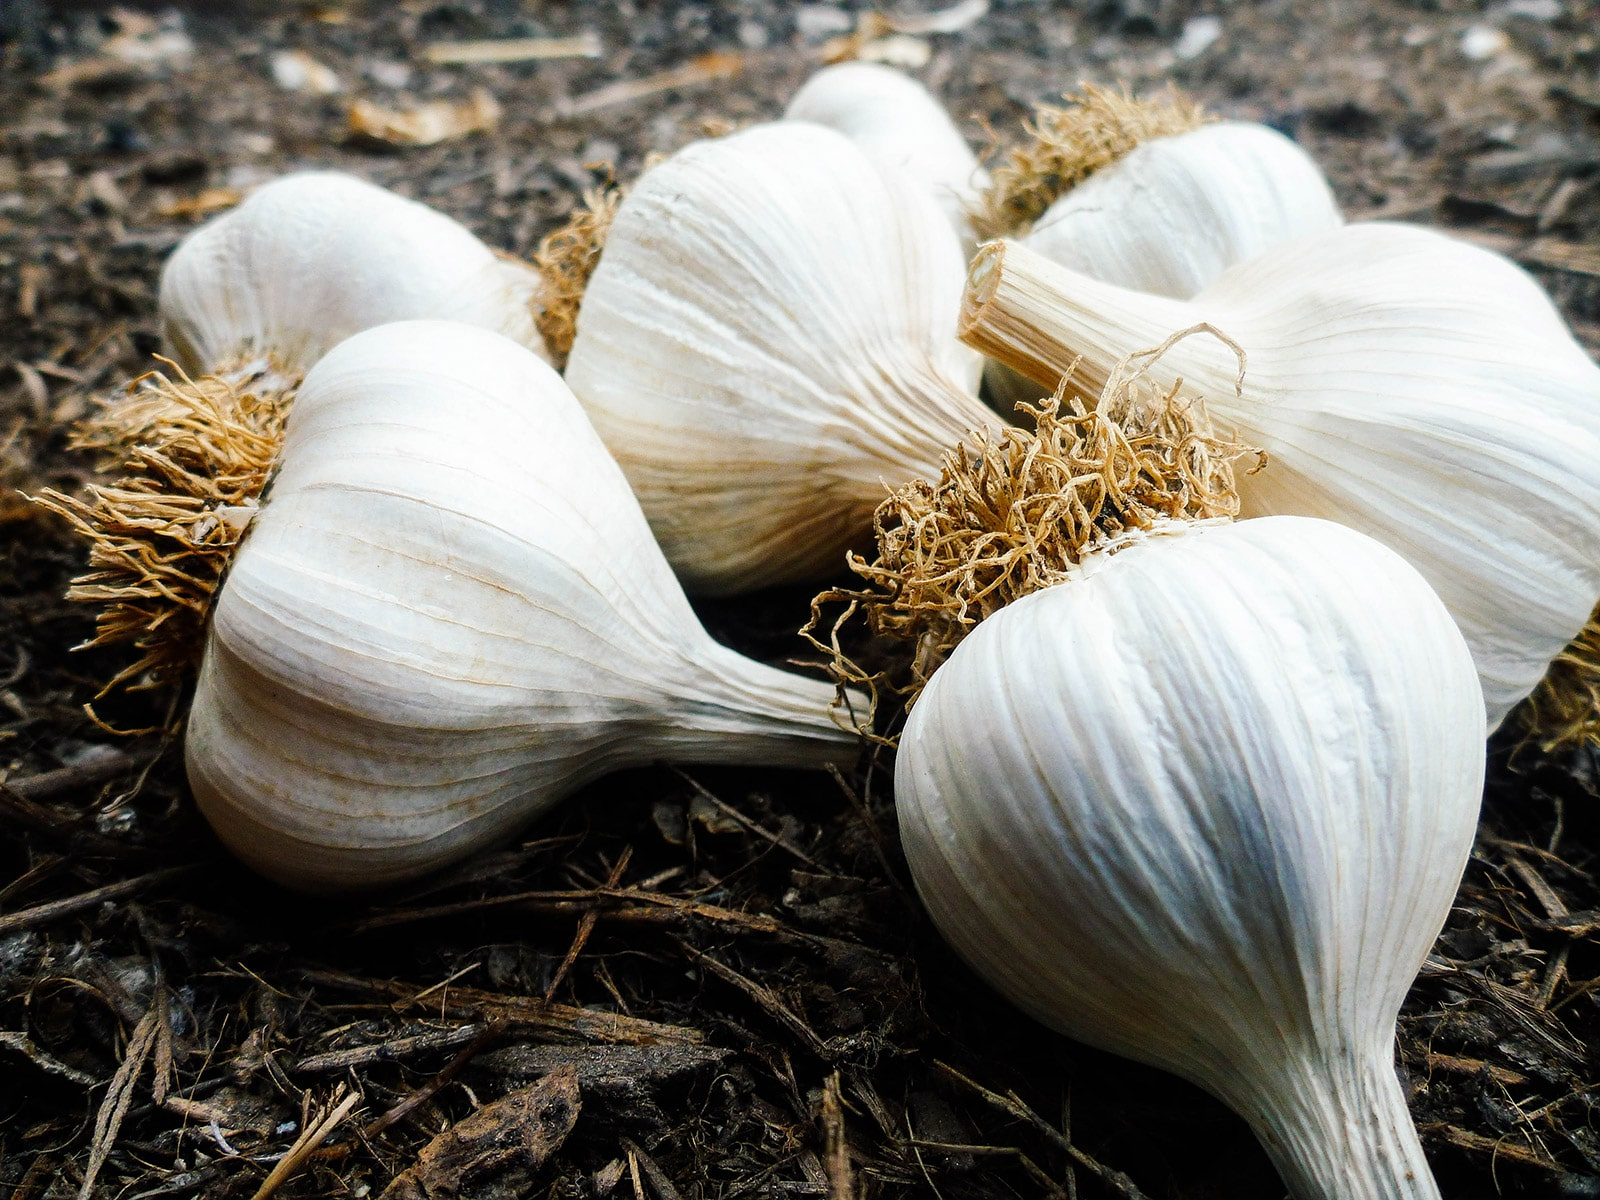 Homegrown garlic bulbs that can be used as seed garlic for next season